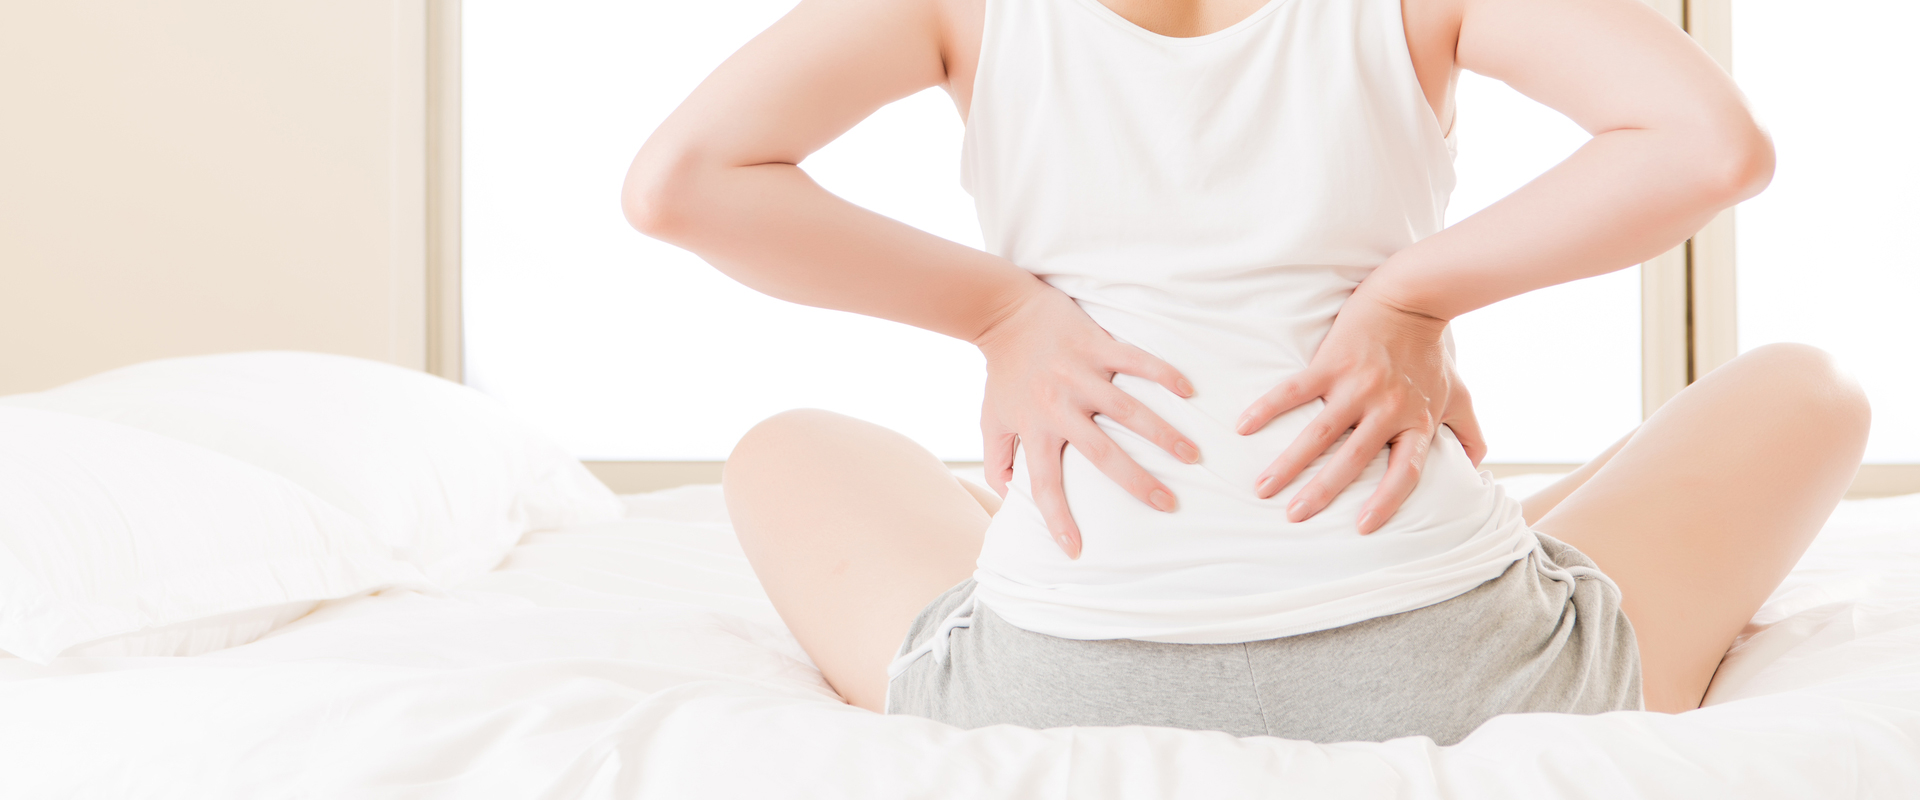 Best Physiotherapy Clinic in South Delhi, Top Physiotherapy Centre in Delhi NCR